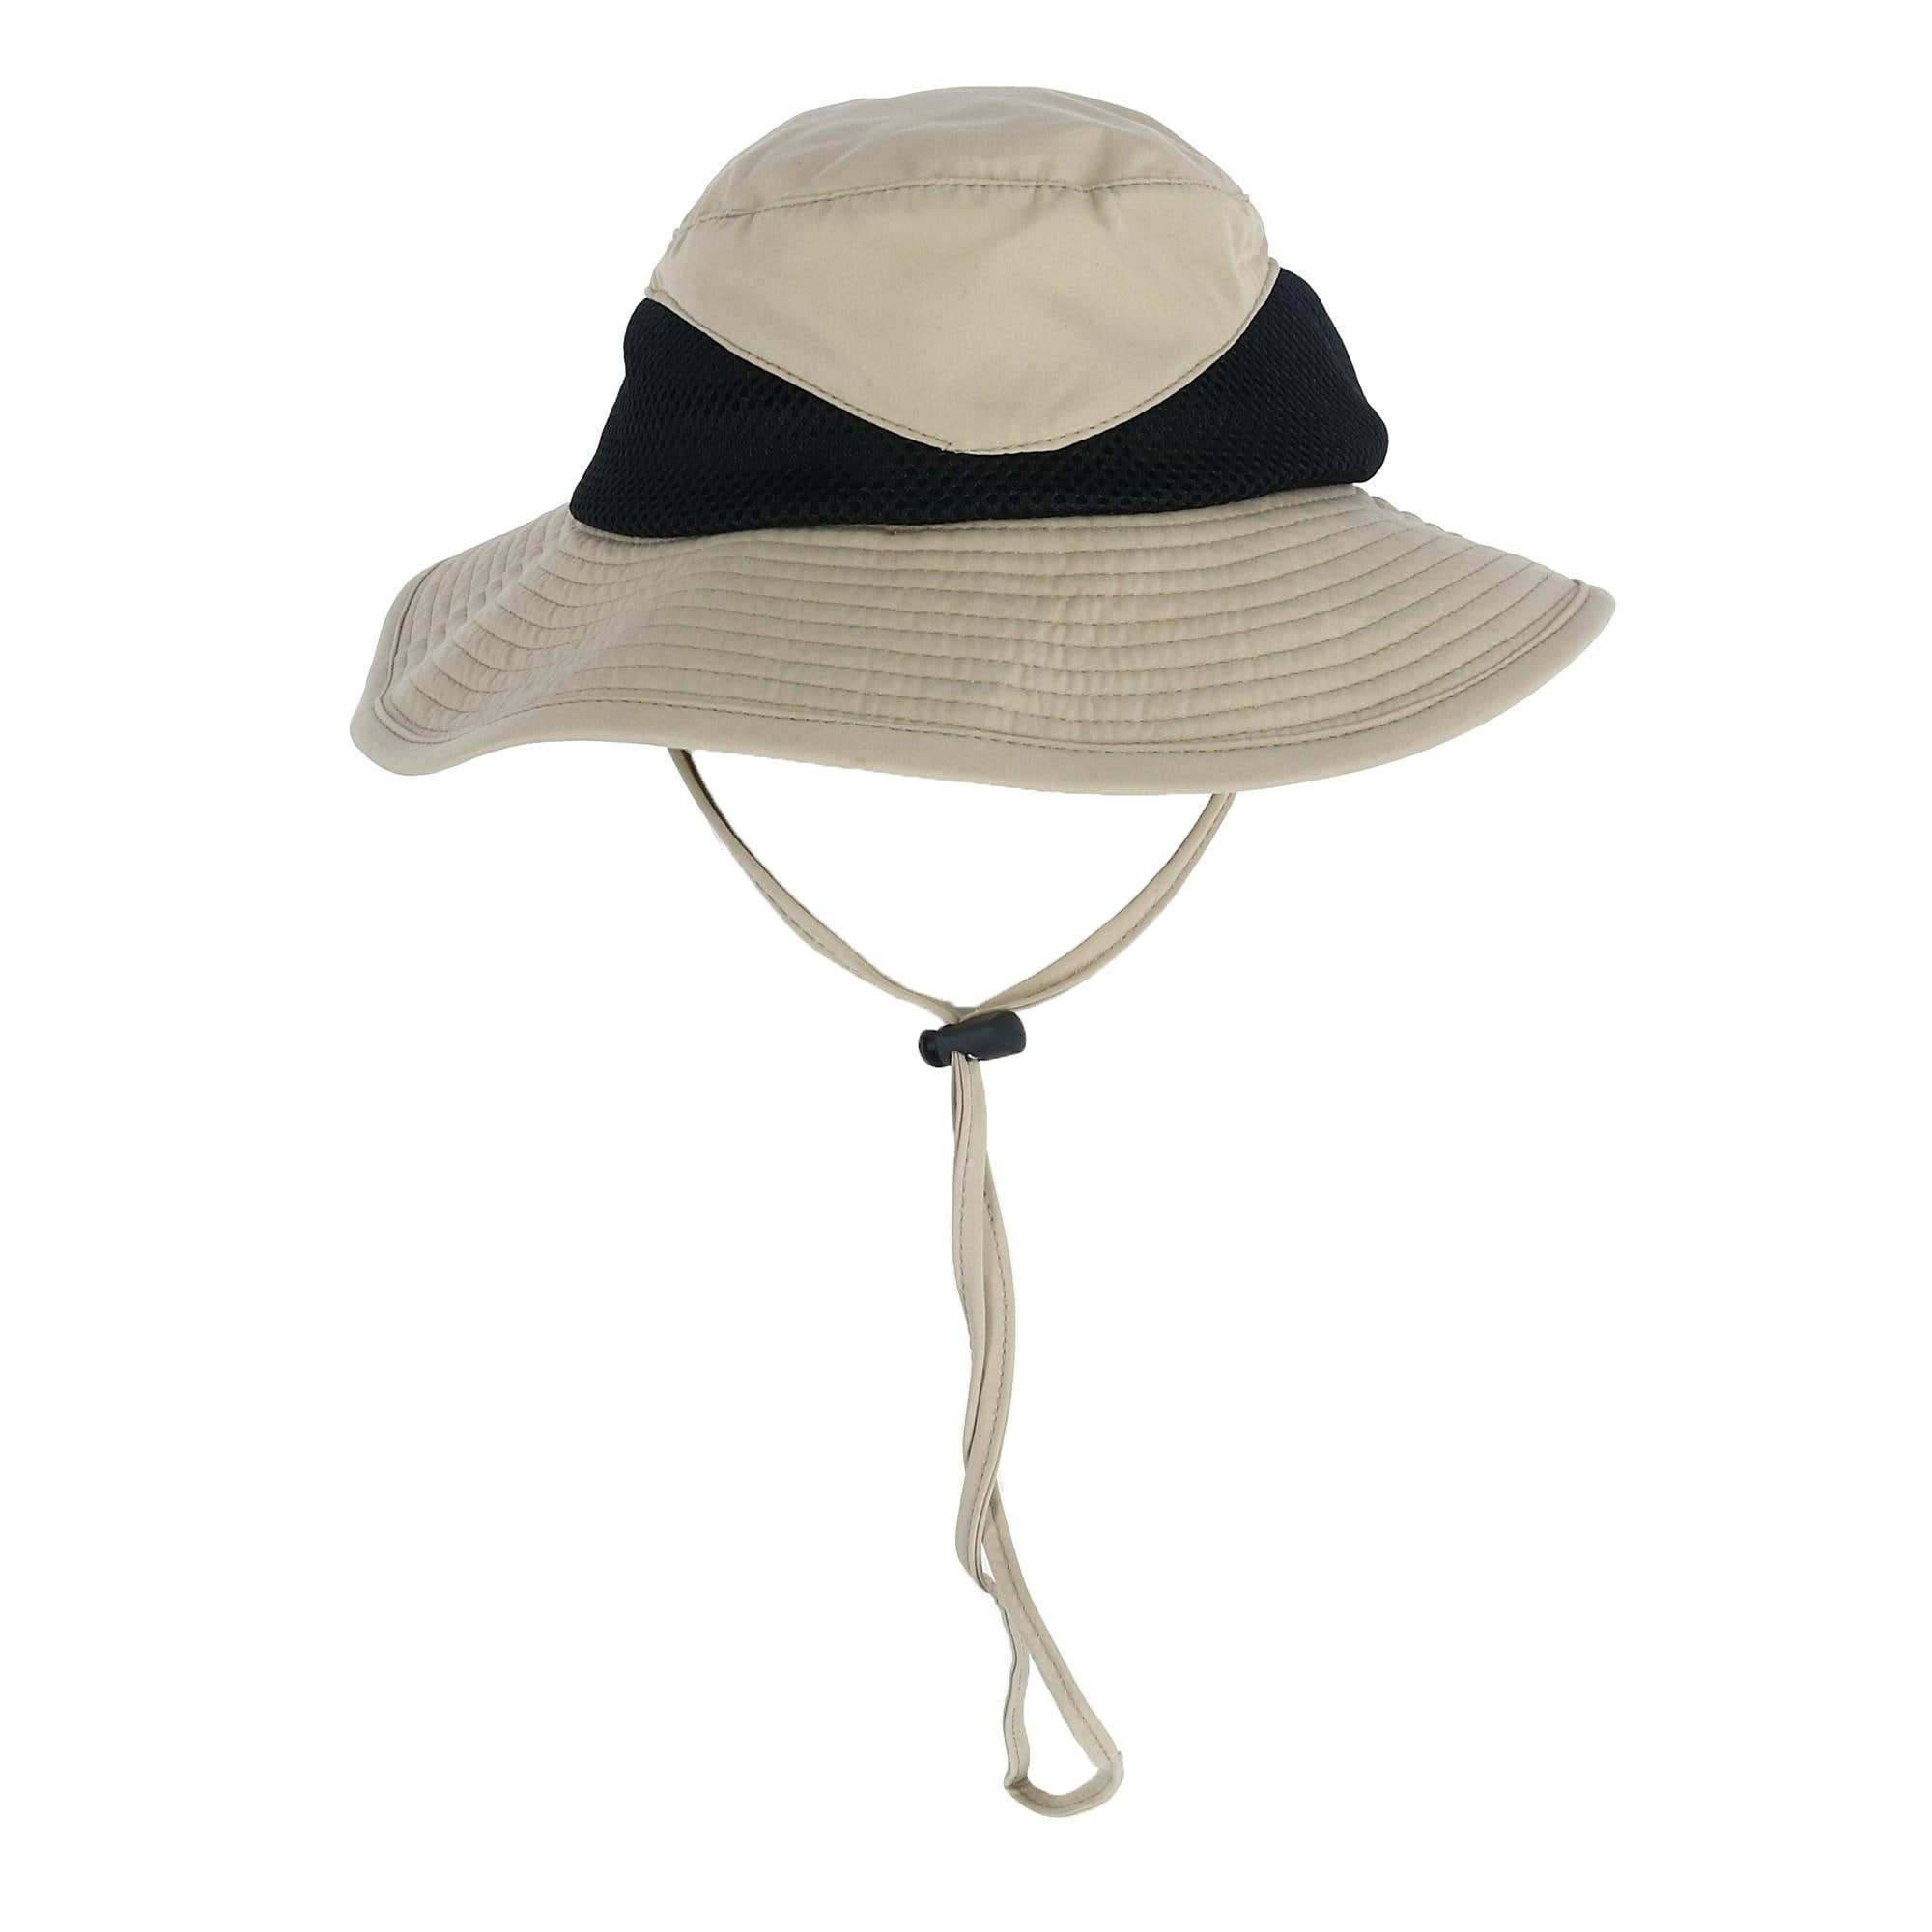 552f57fcca769a Shop Kenny K Men's Breathable Bucket Hat with Chin Cord - Free Shipping On  Orders Over $45 - Overstock - 28034934